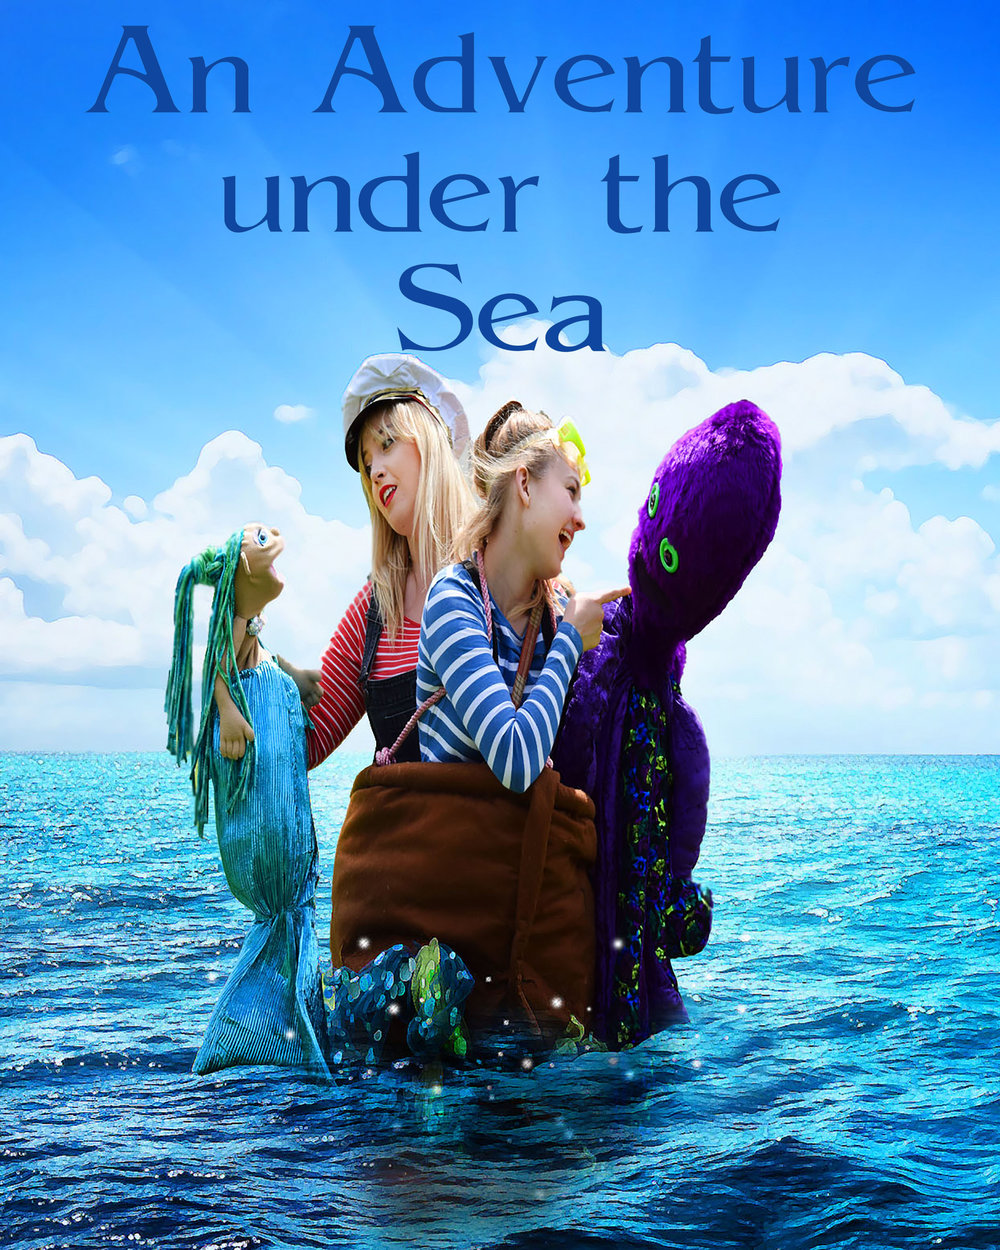 An Adventure under the Sea image.jpg